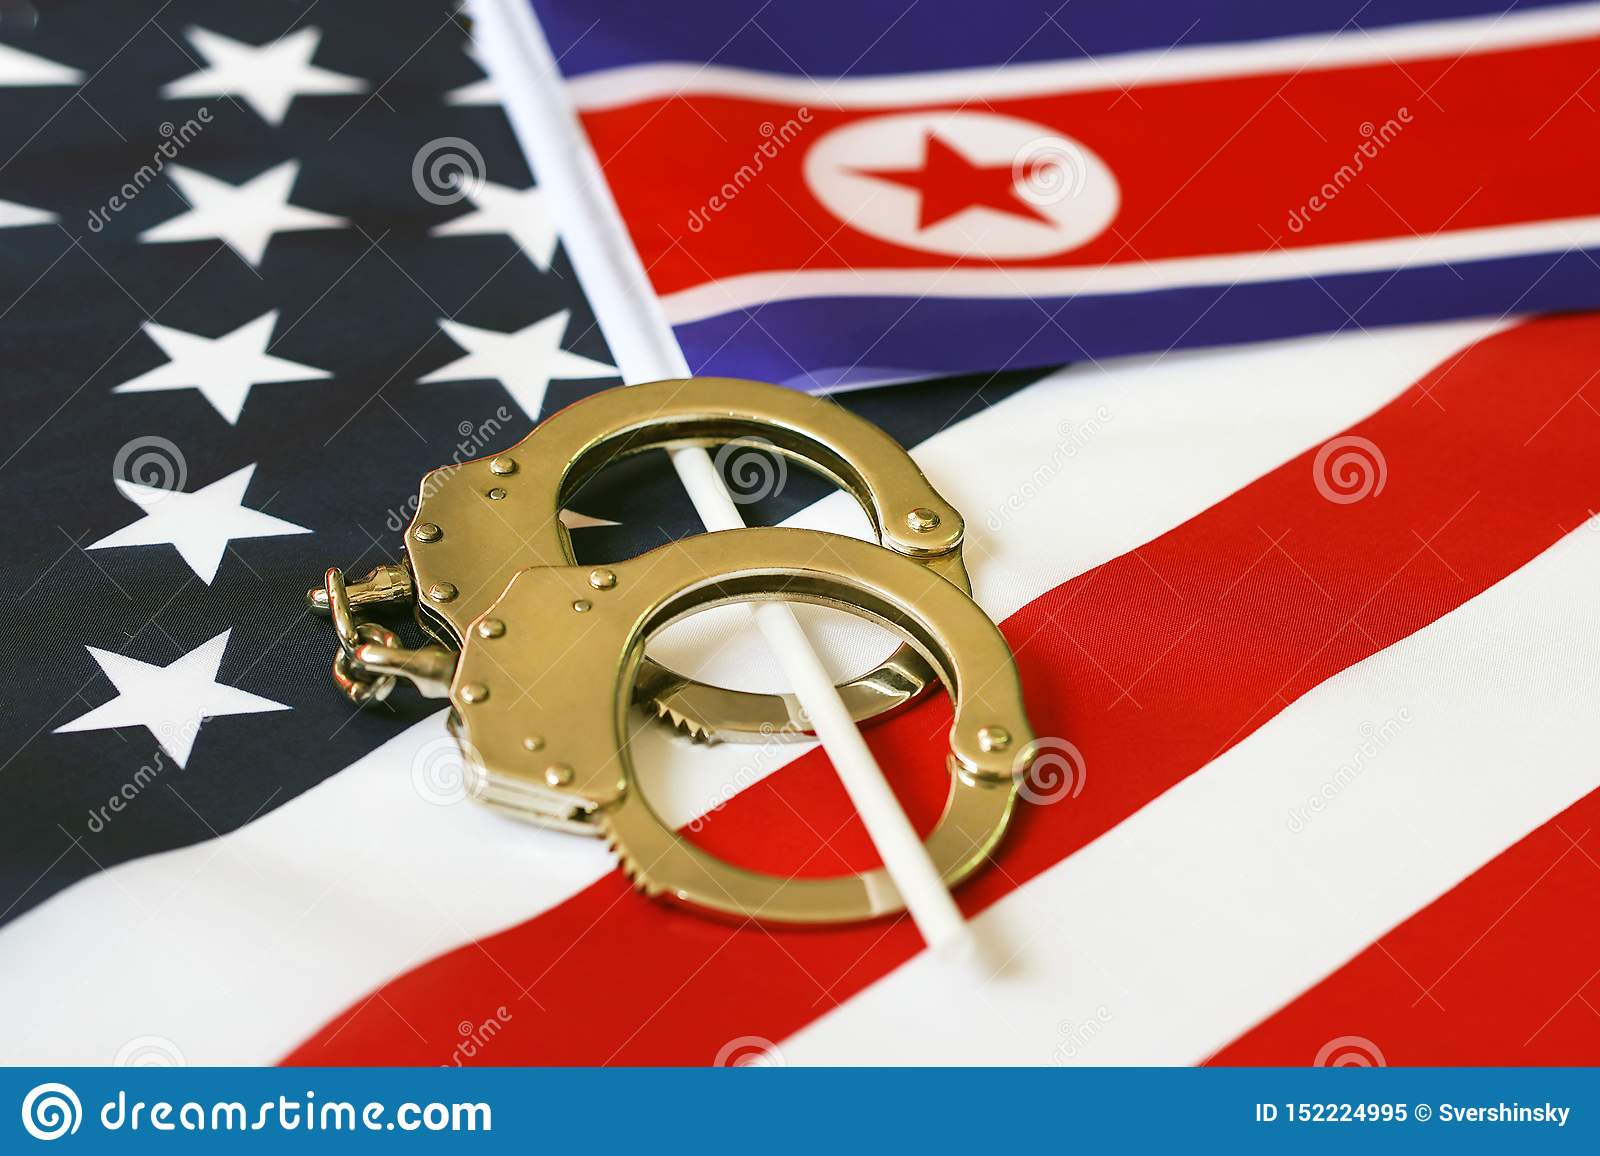 Flag of USA and North Korea. Handcuffs. Sanctions